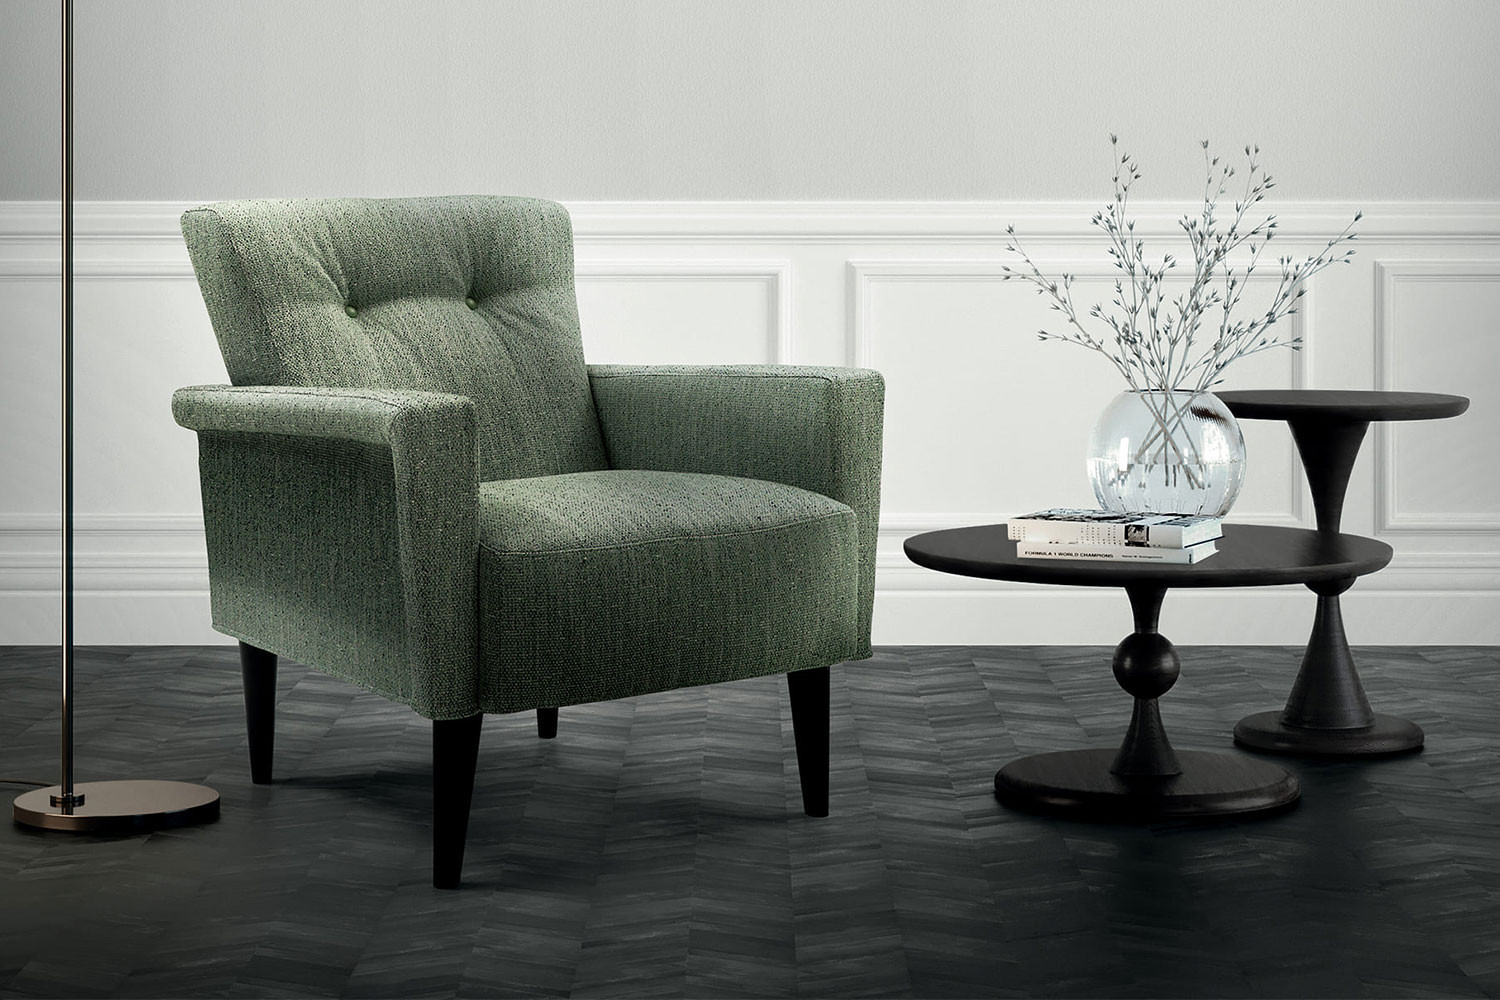 Stylish mid-century style upholstered armchair with button back